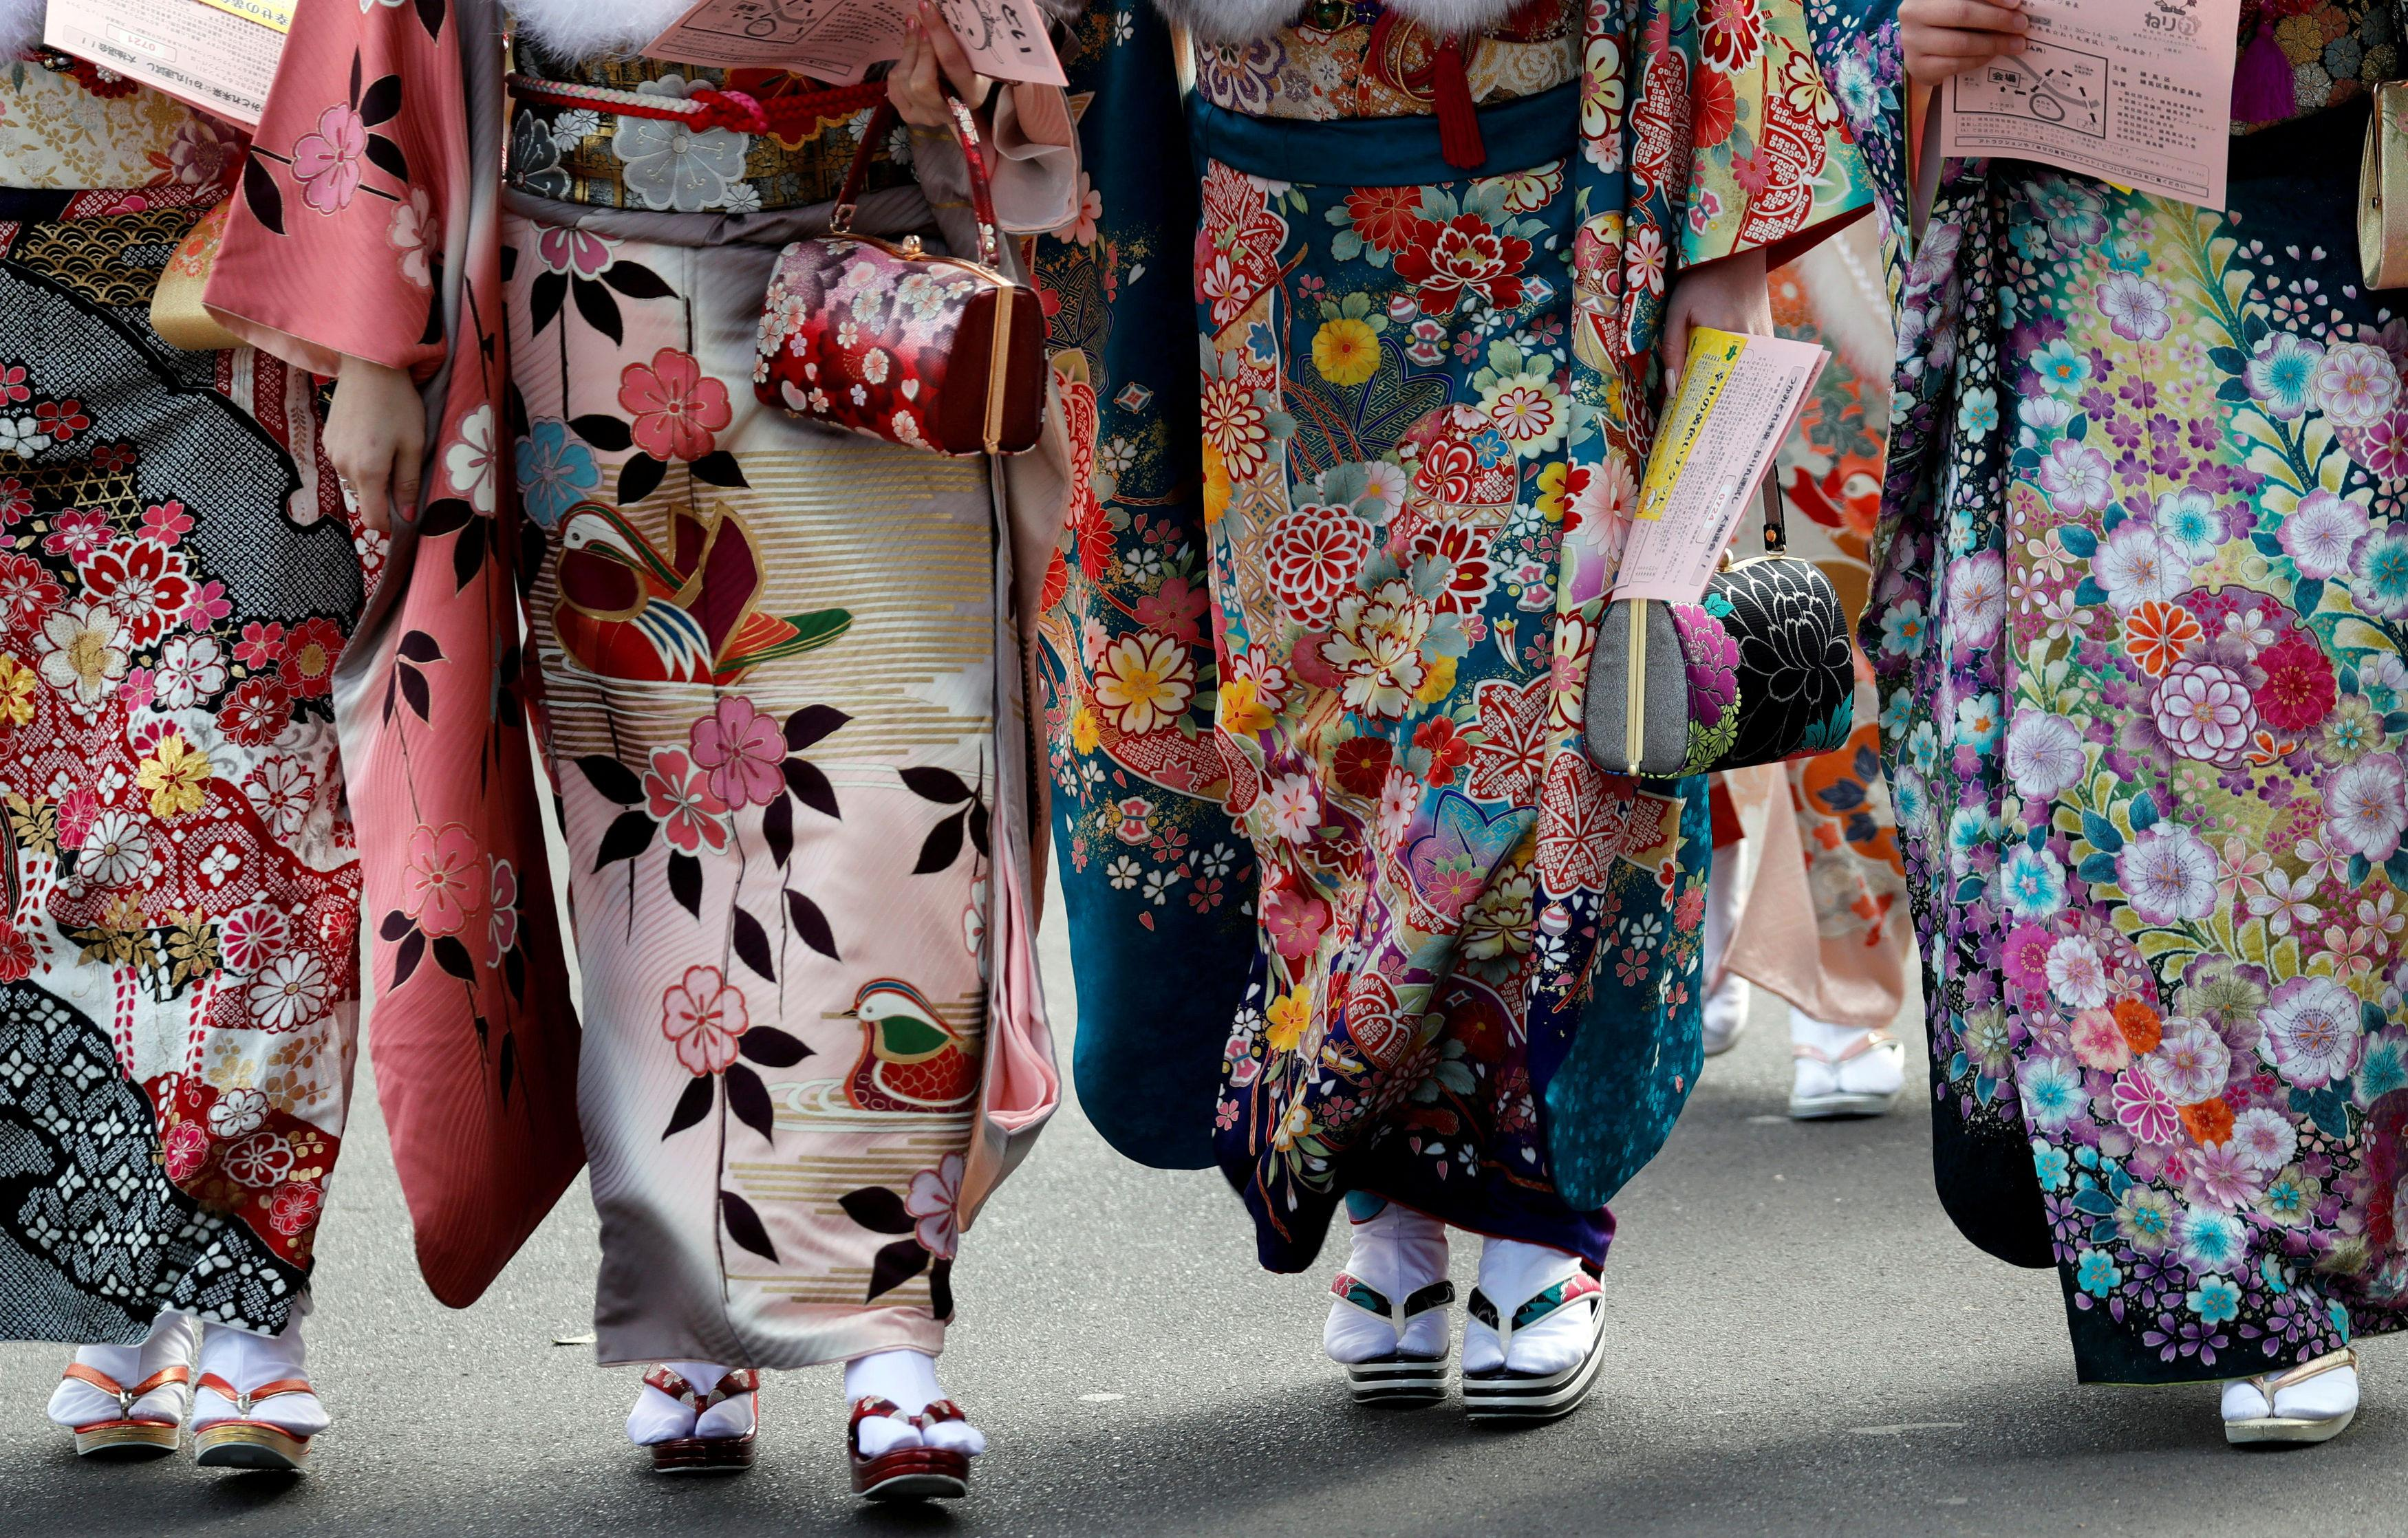 Asian women and the kimono have long been sexualized in western culture